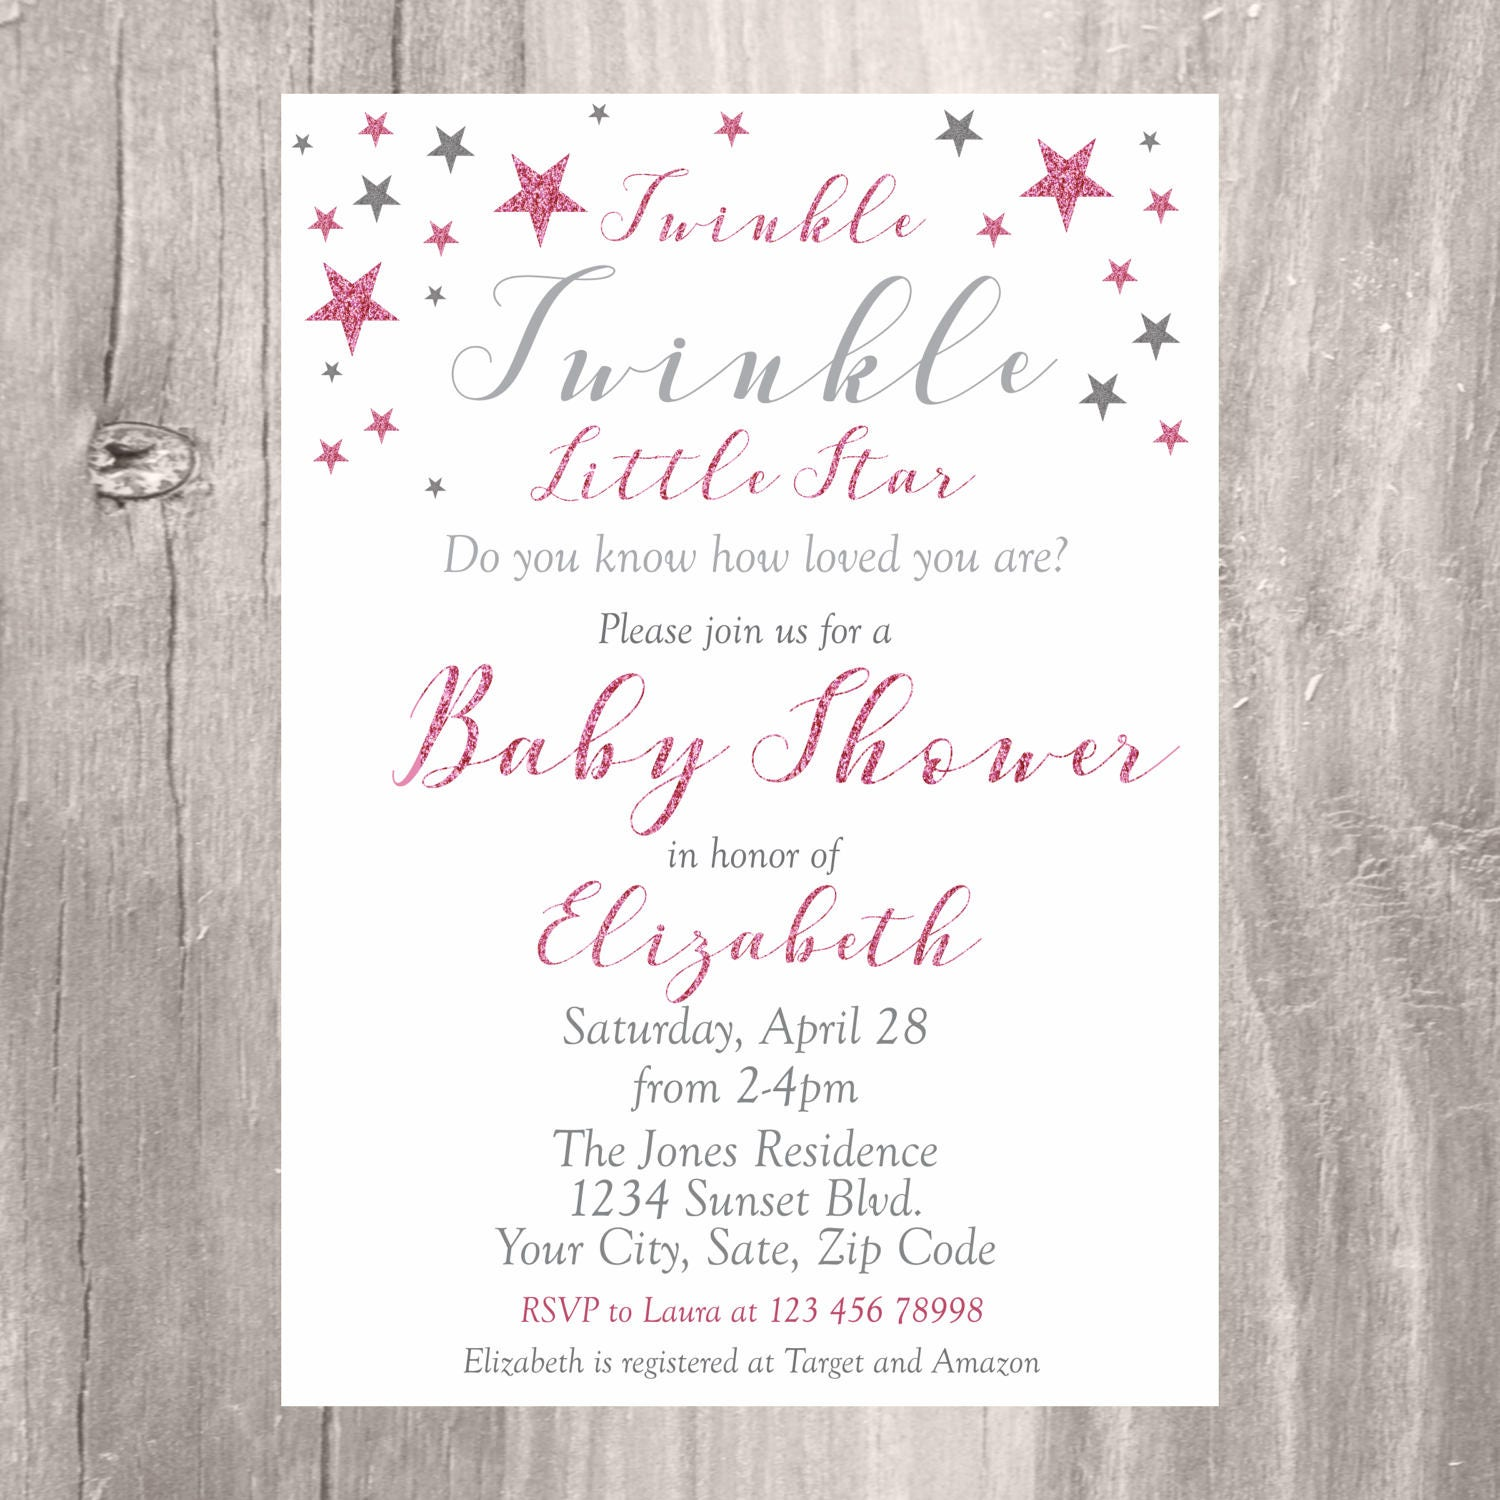 baby shower invitation pink and silver twinkle little star